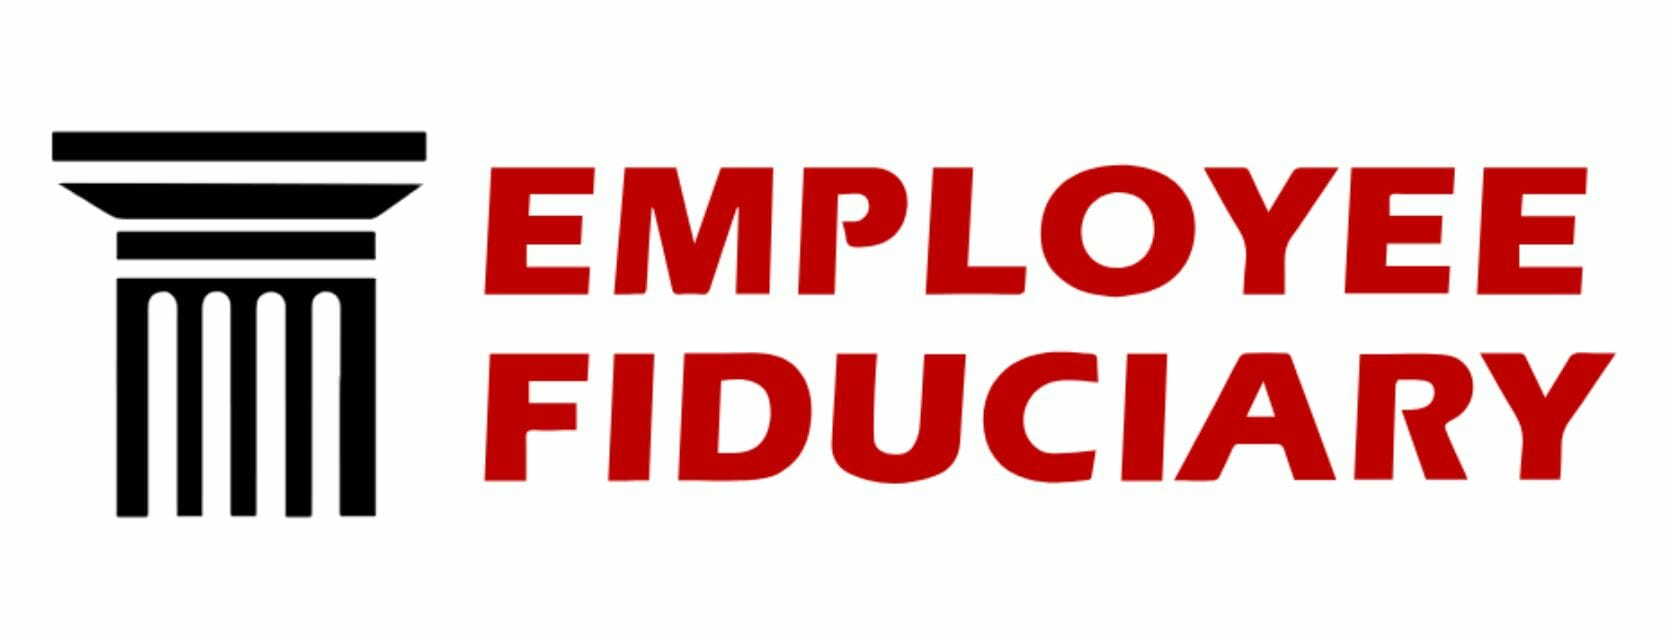 EmployeeFiduciary-logo